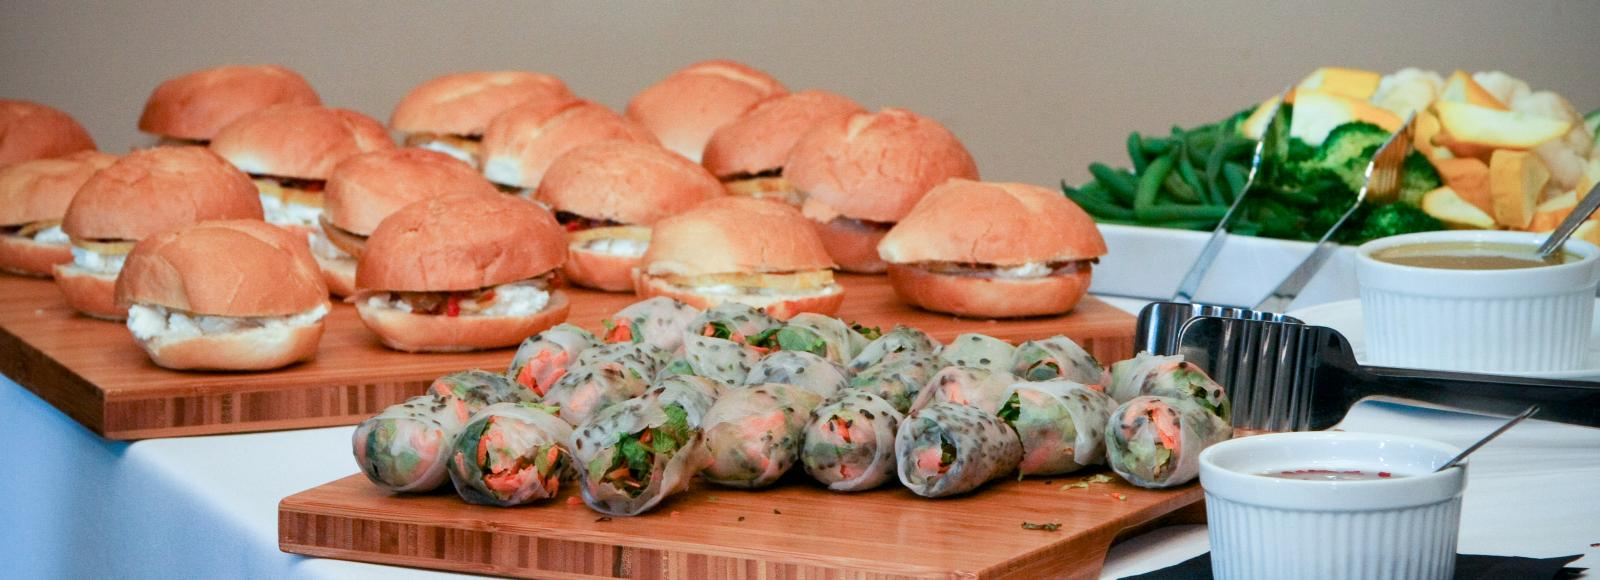 Sandwiches and egg rolls are displayed on bamboo platters